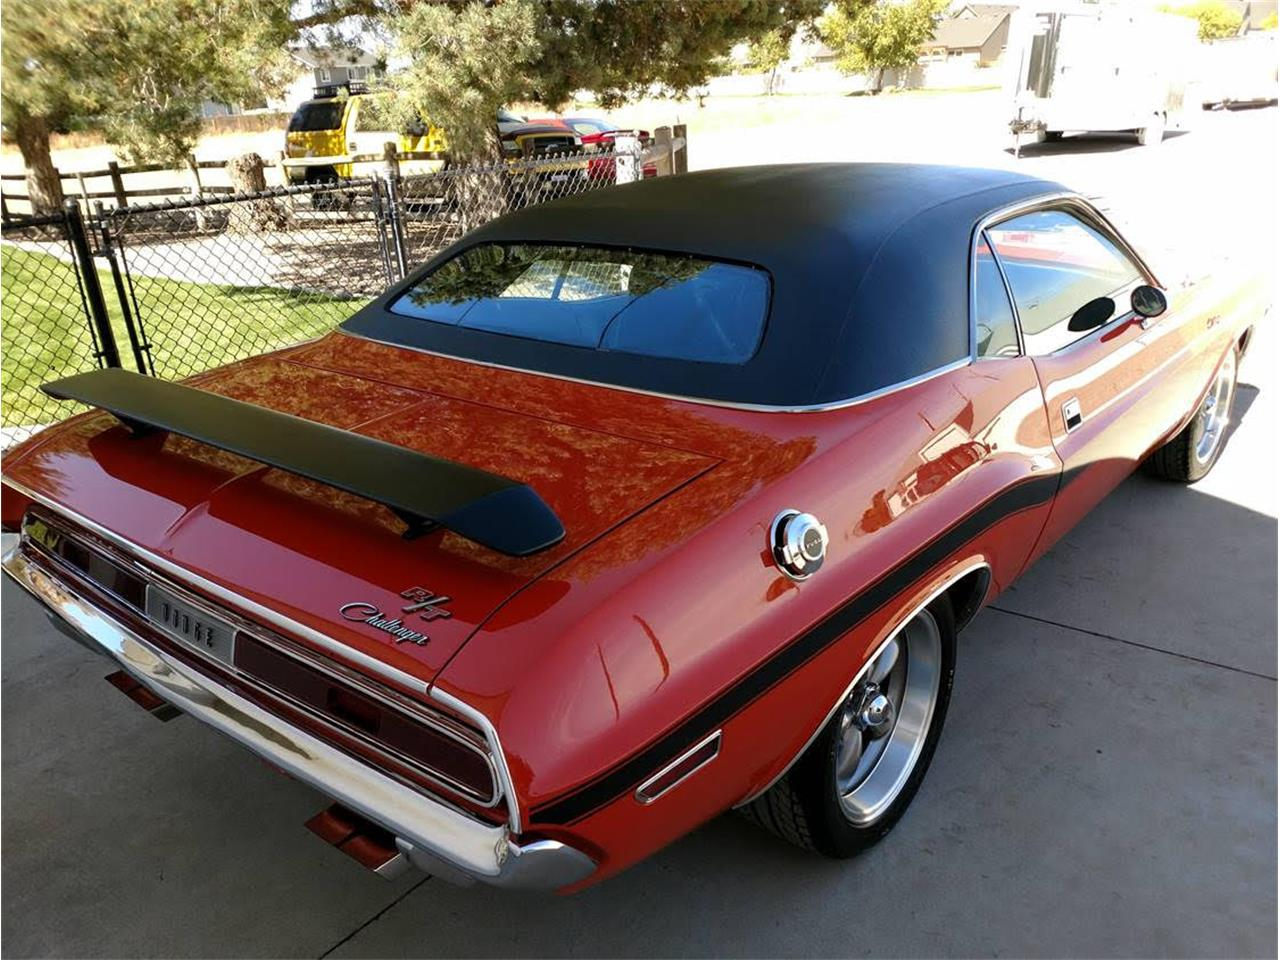 Large Picture of 1970 Challenger R/T - $65,000.00 Offered by a Private Seller - Q3RQ